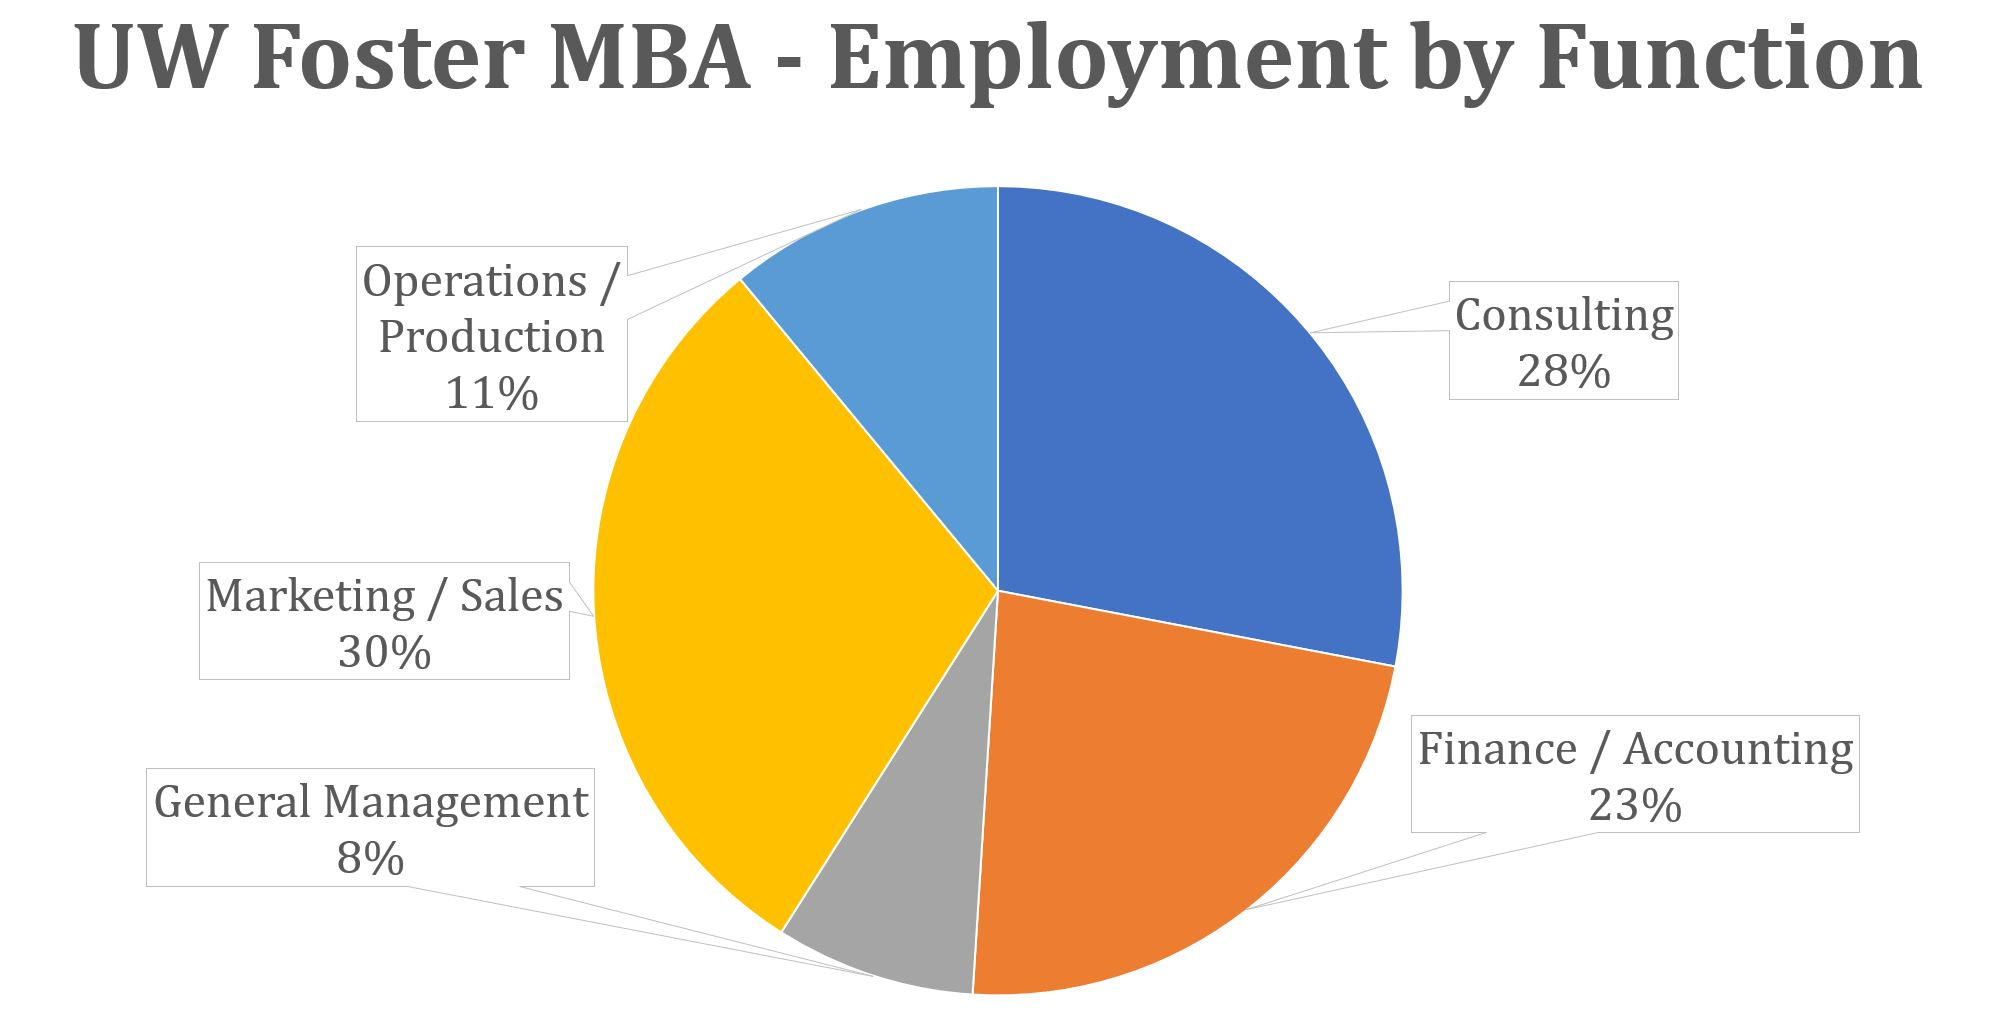 UW Foster MBA - Employment by Function